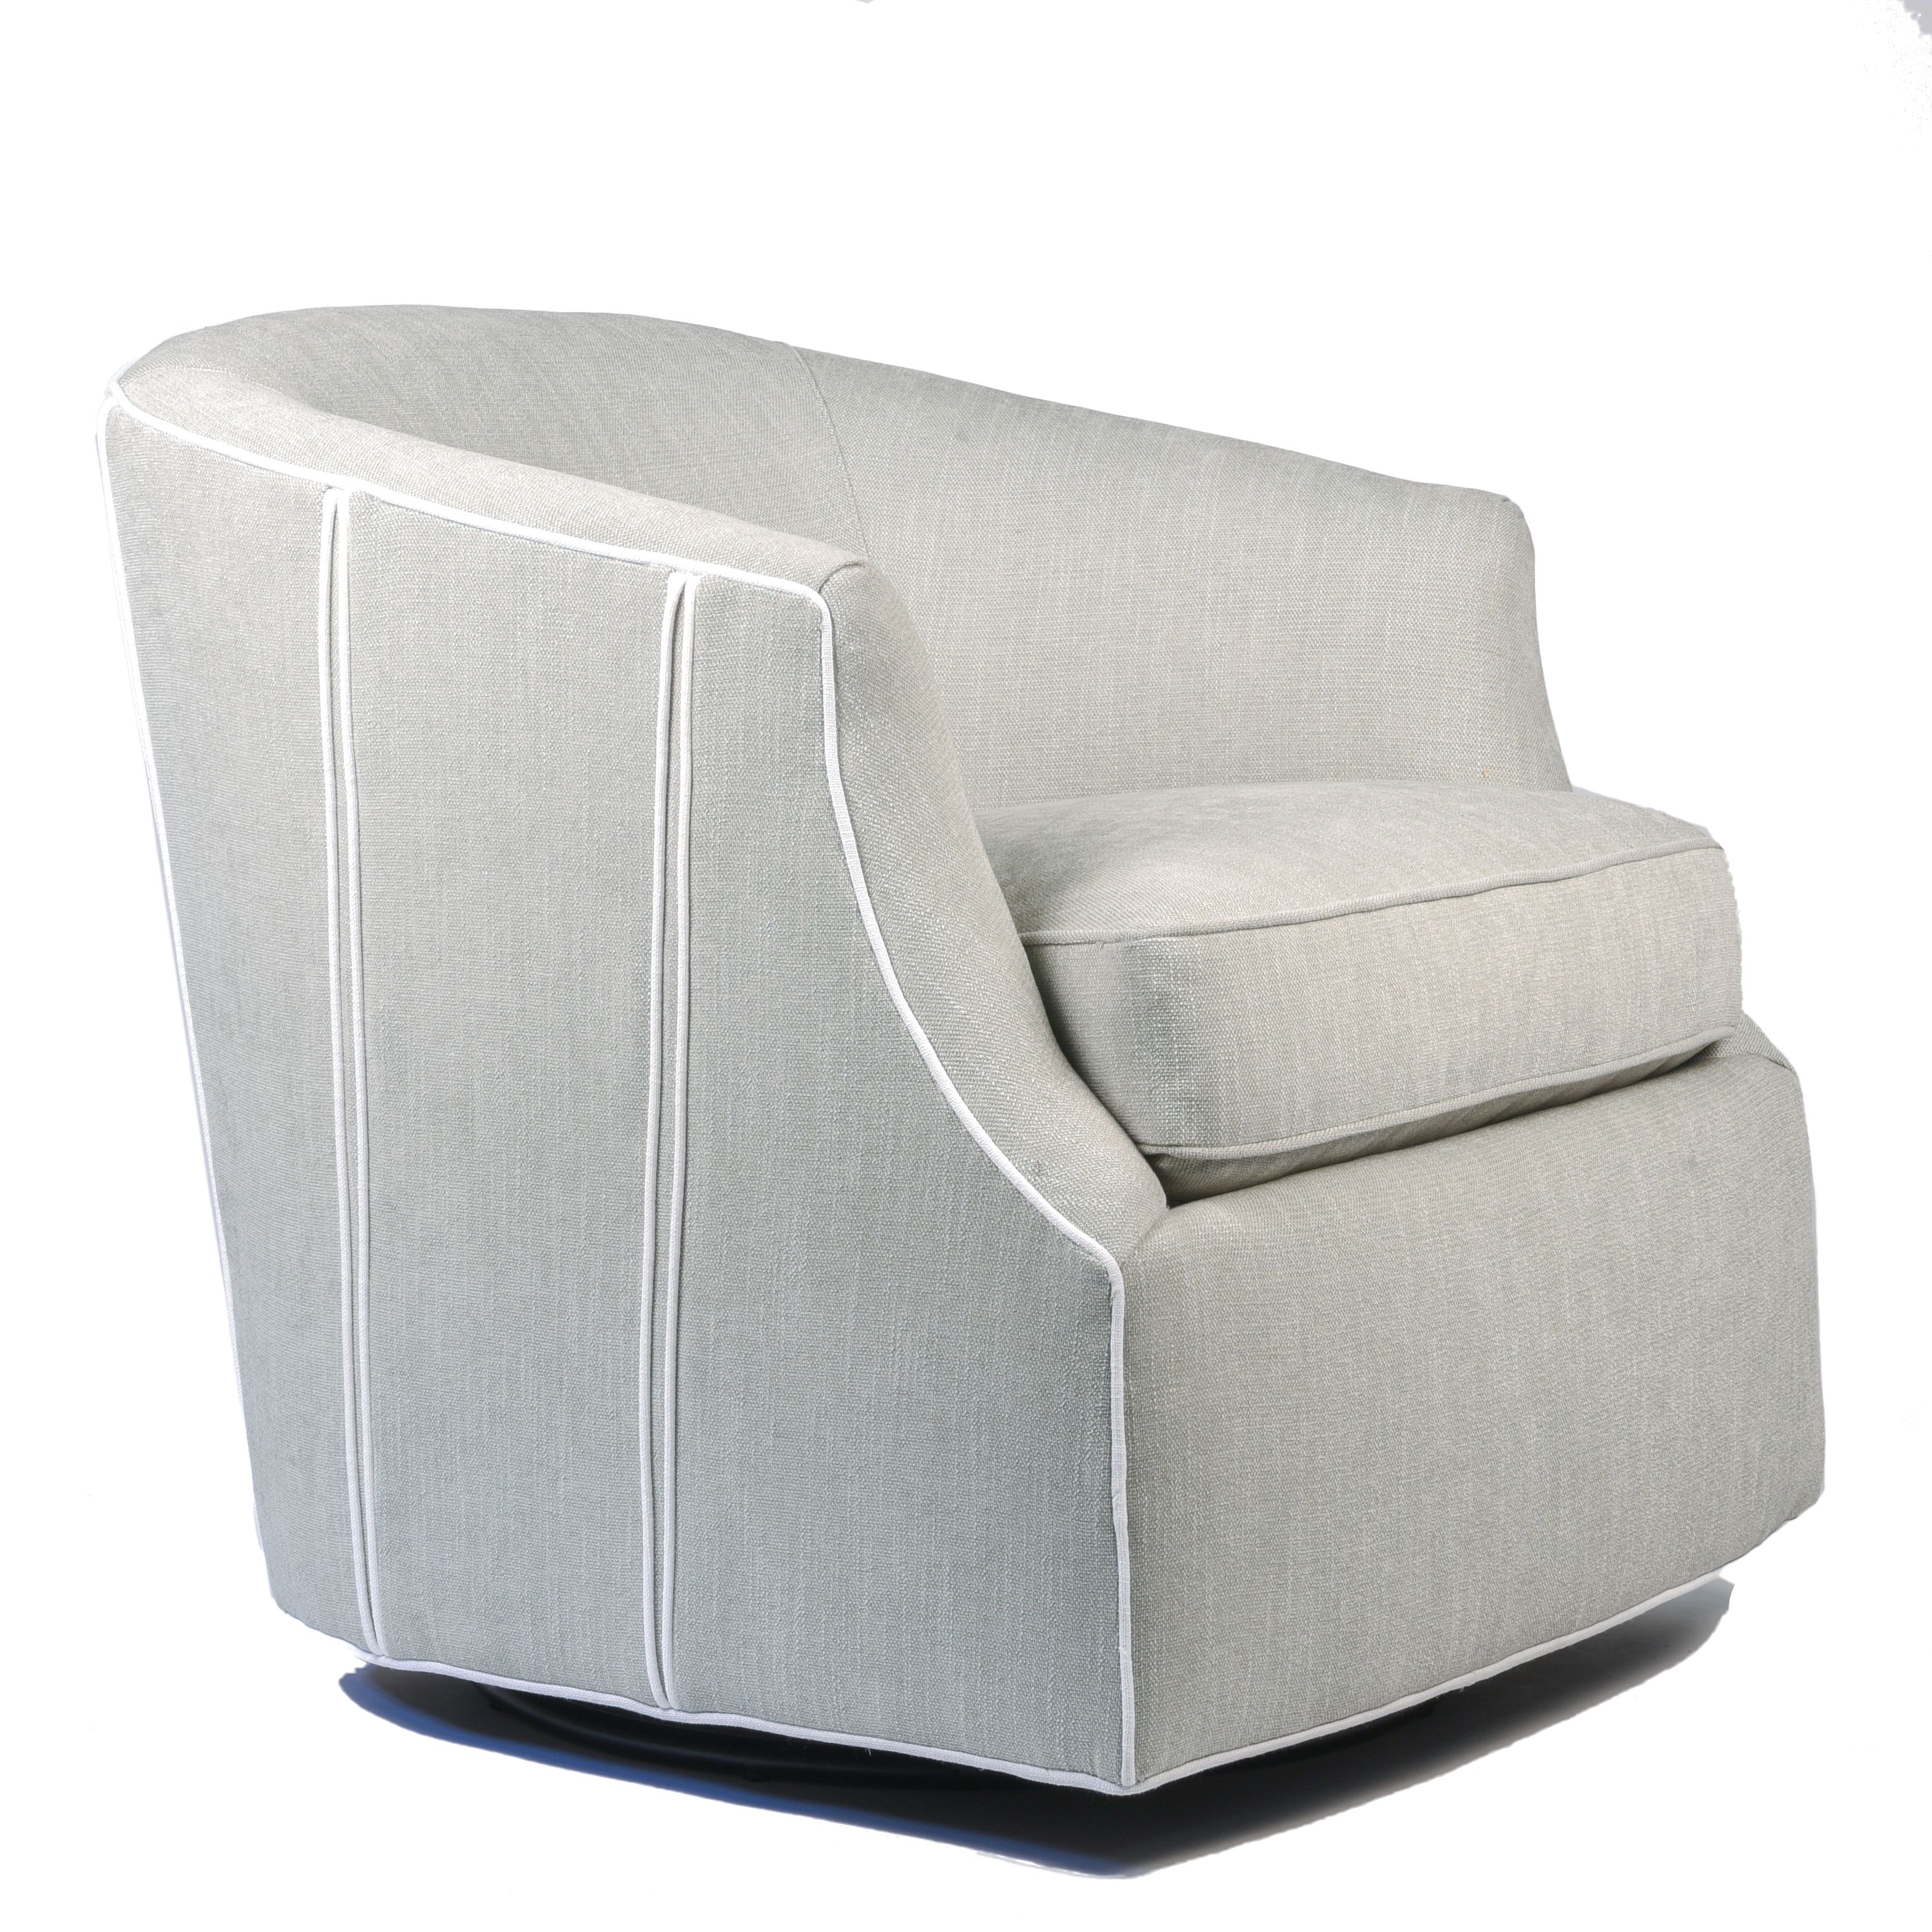 Miraculous Gray Swivel Chair With White Piping Custom Upholstery Sold Beatyapartments Chair Design Images Beatyapartmentscom